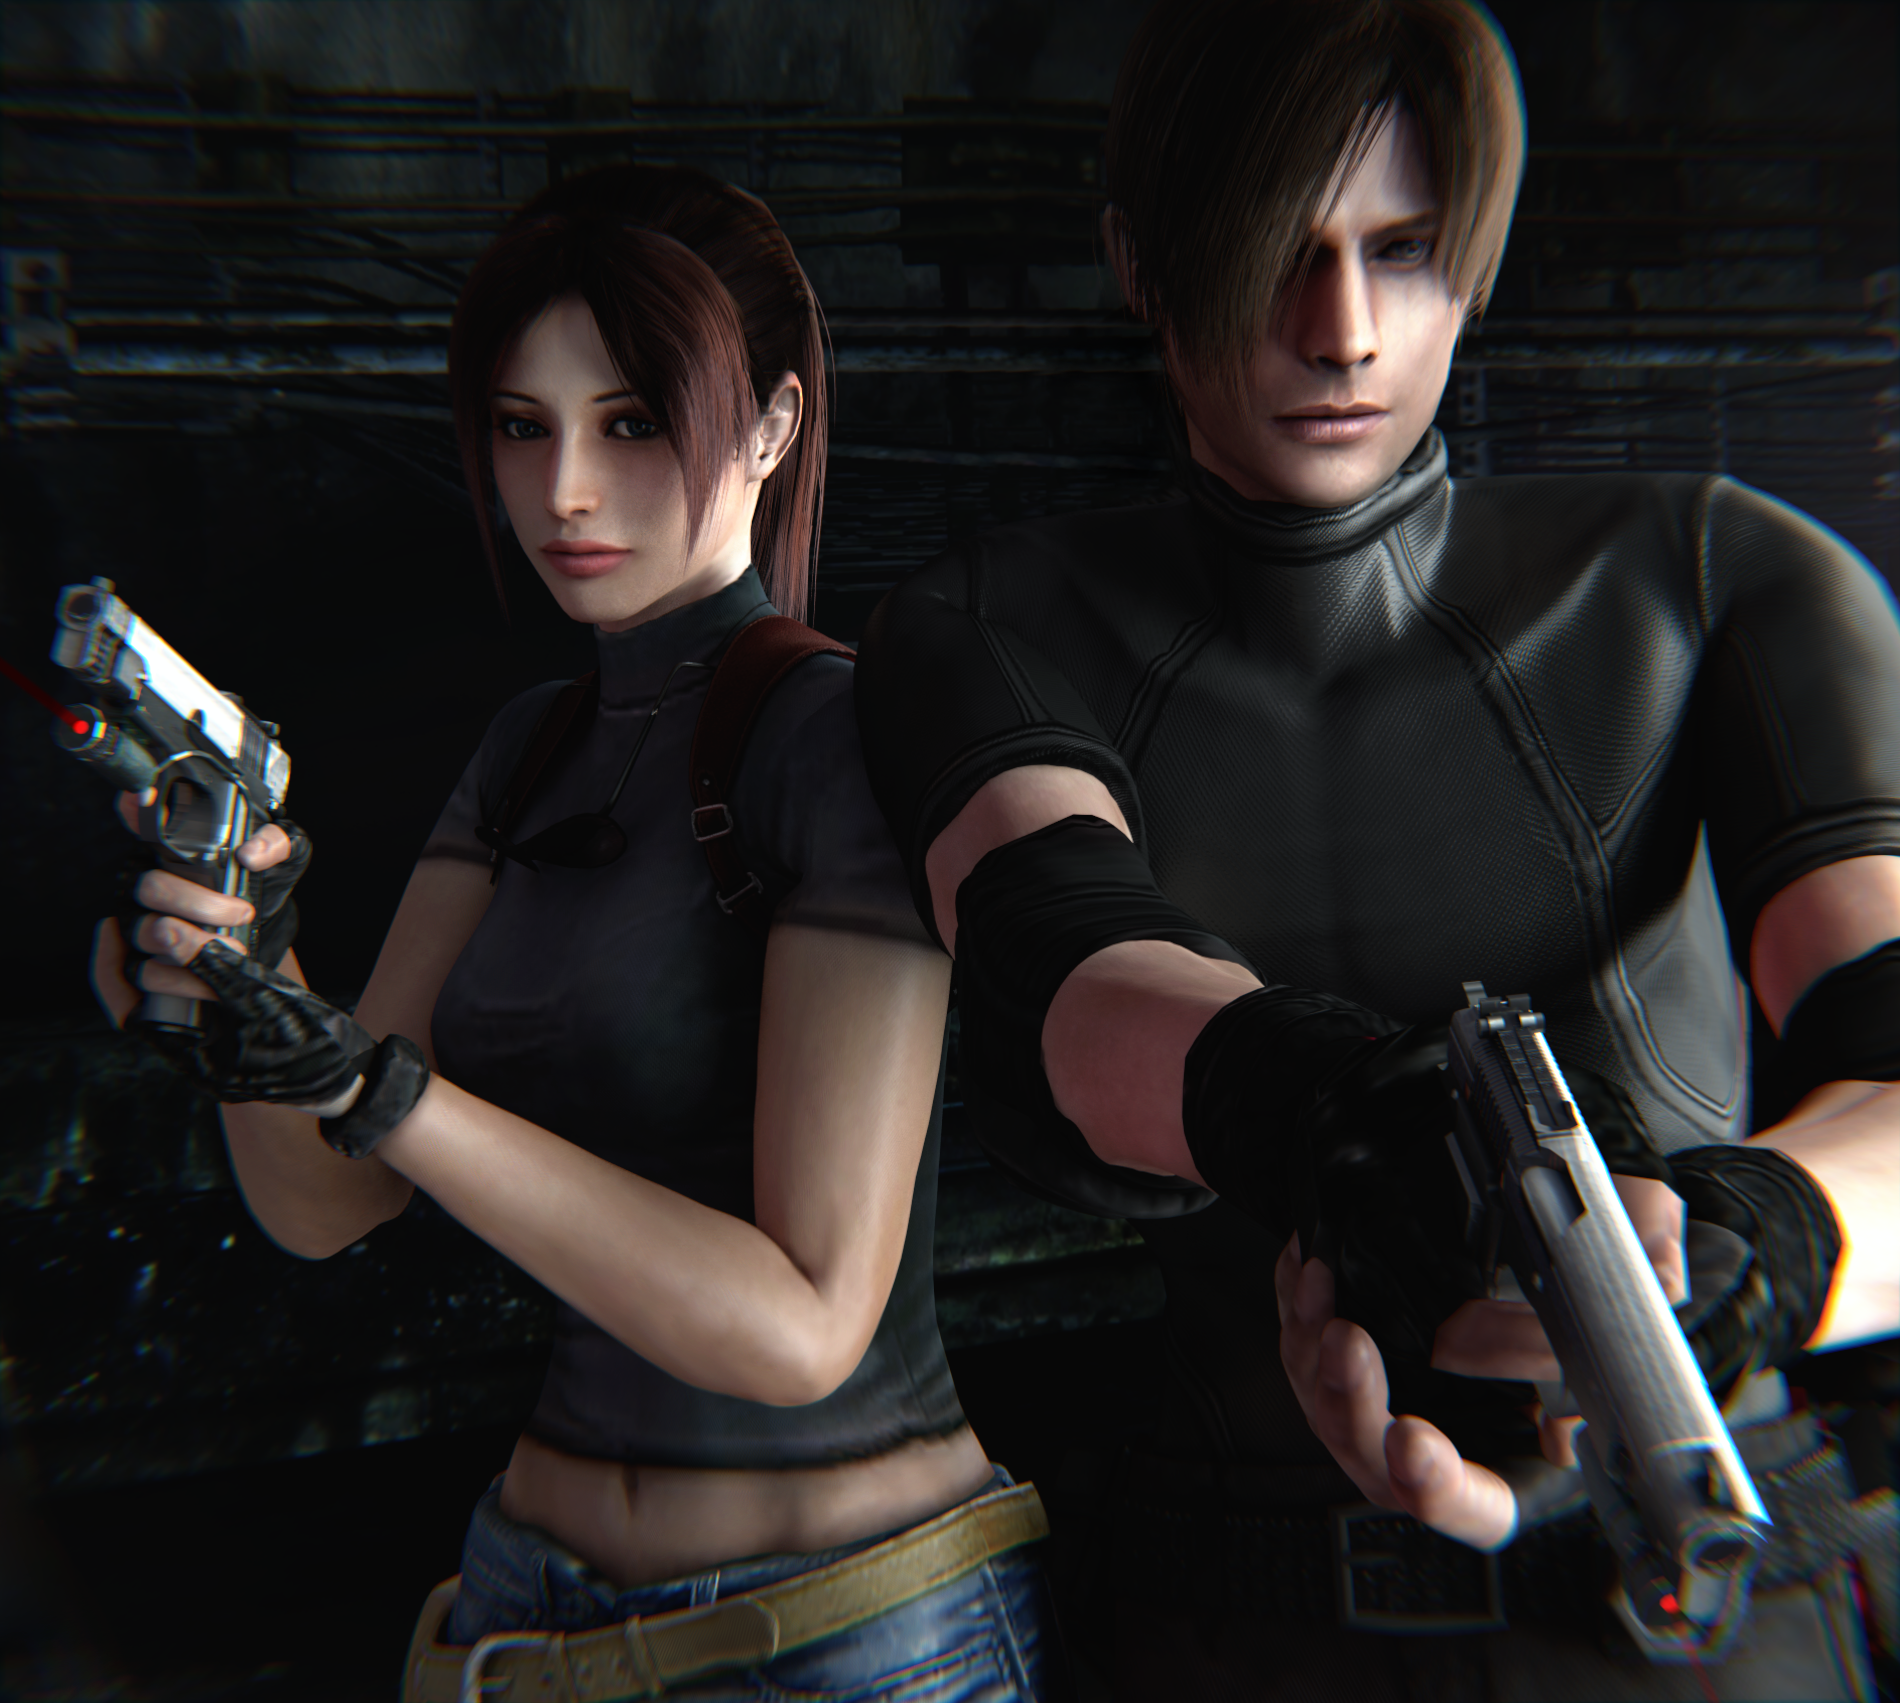 resident evil leon and claire relationship help